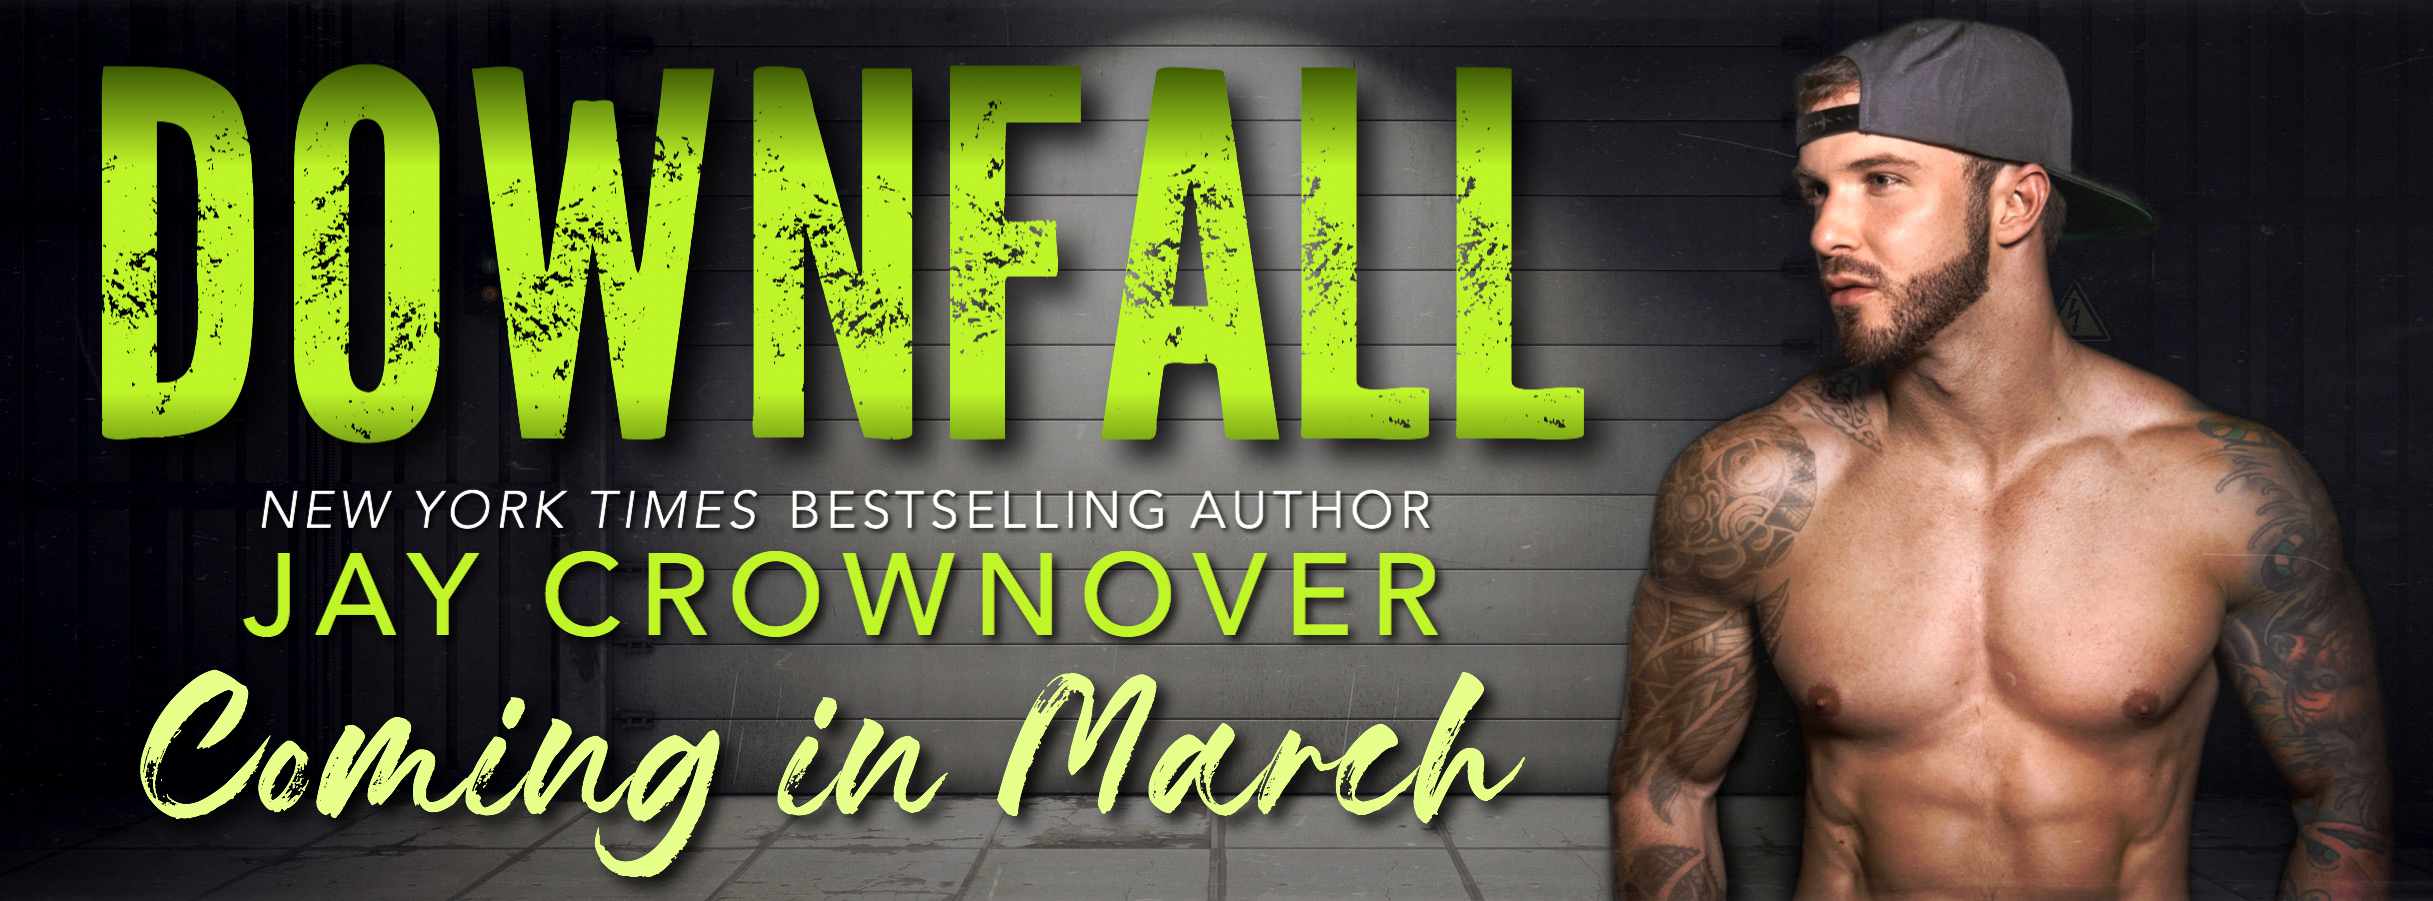 Jay Crownover's DOWNFALL – Release Blitz